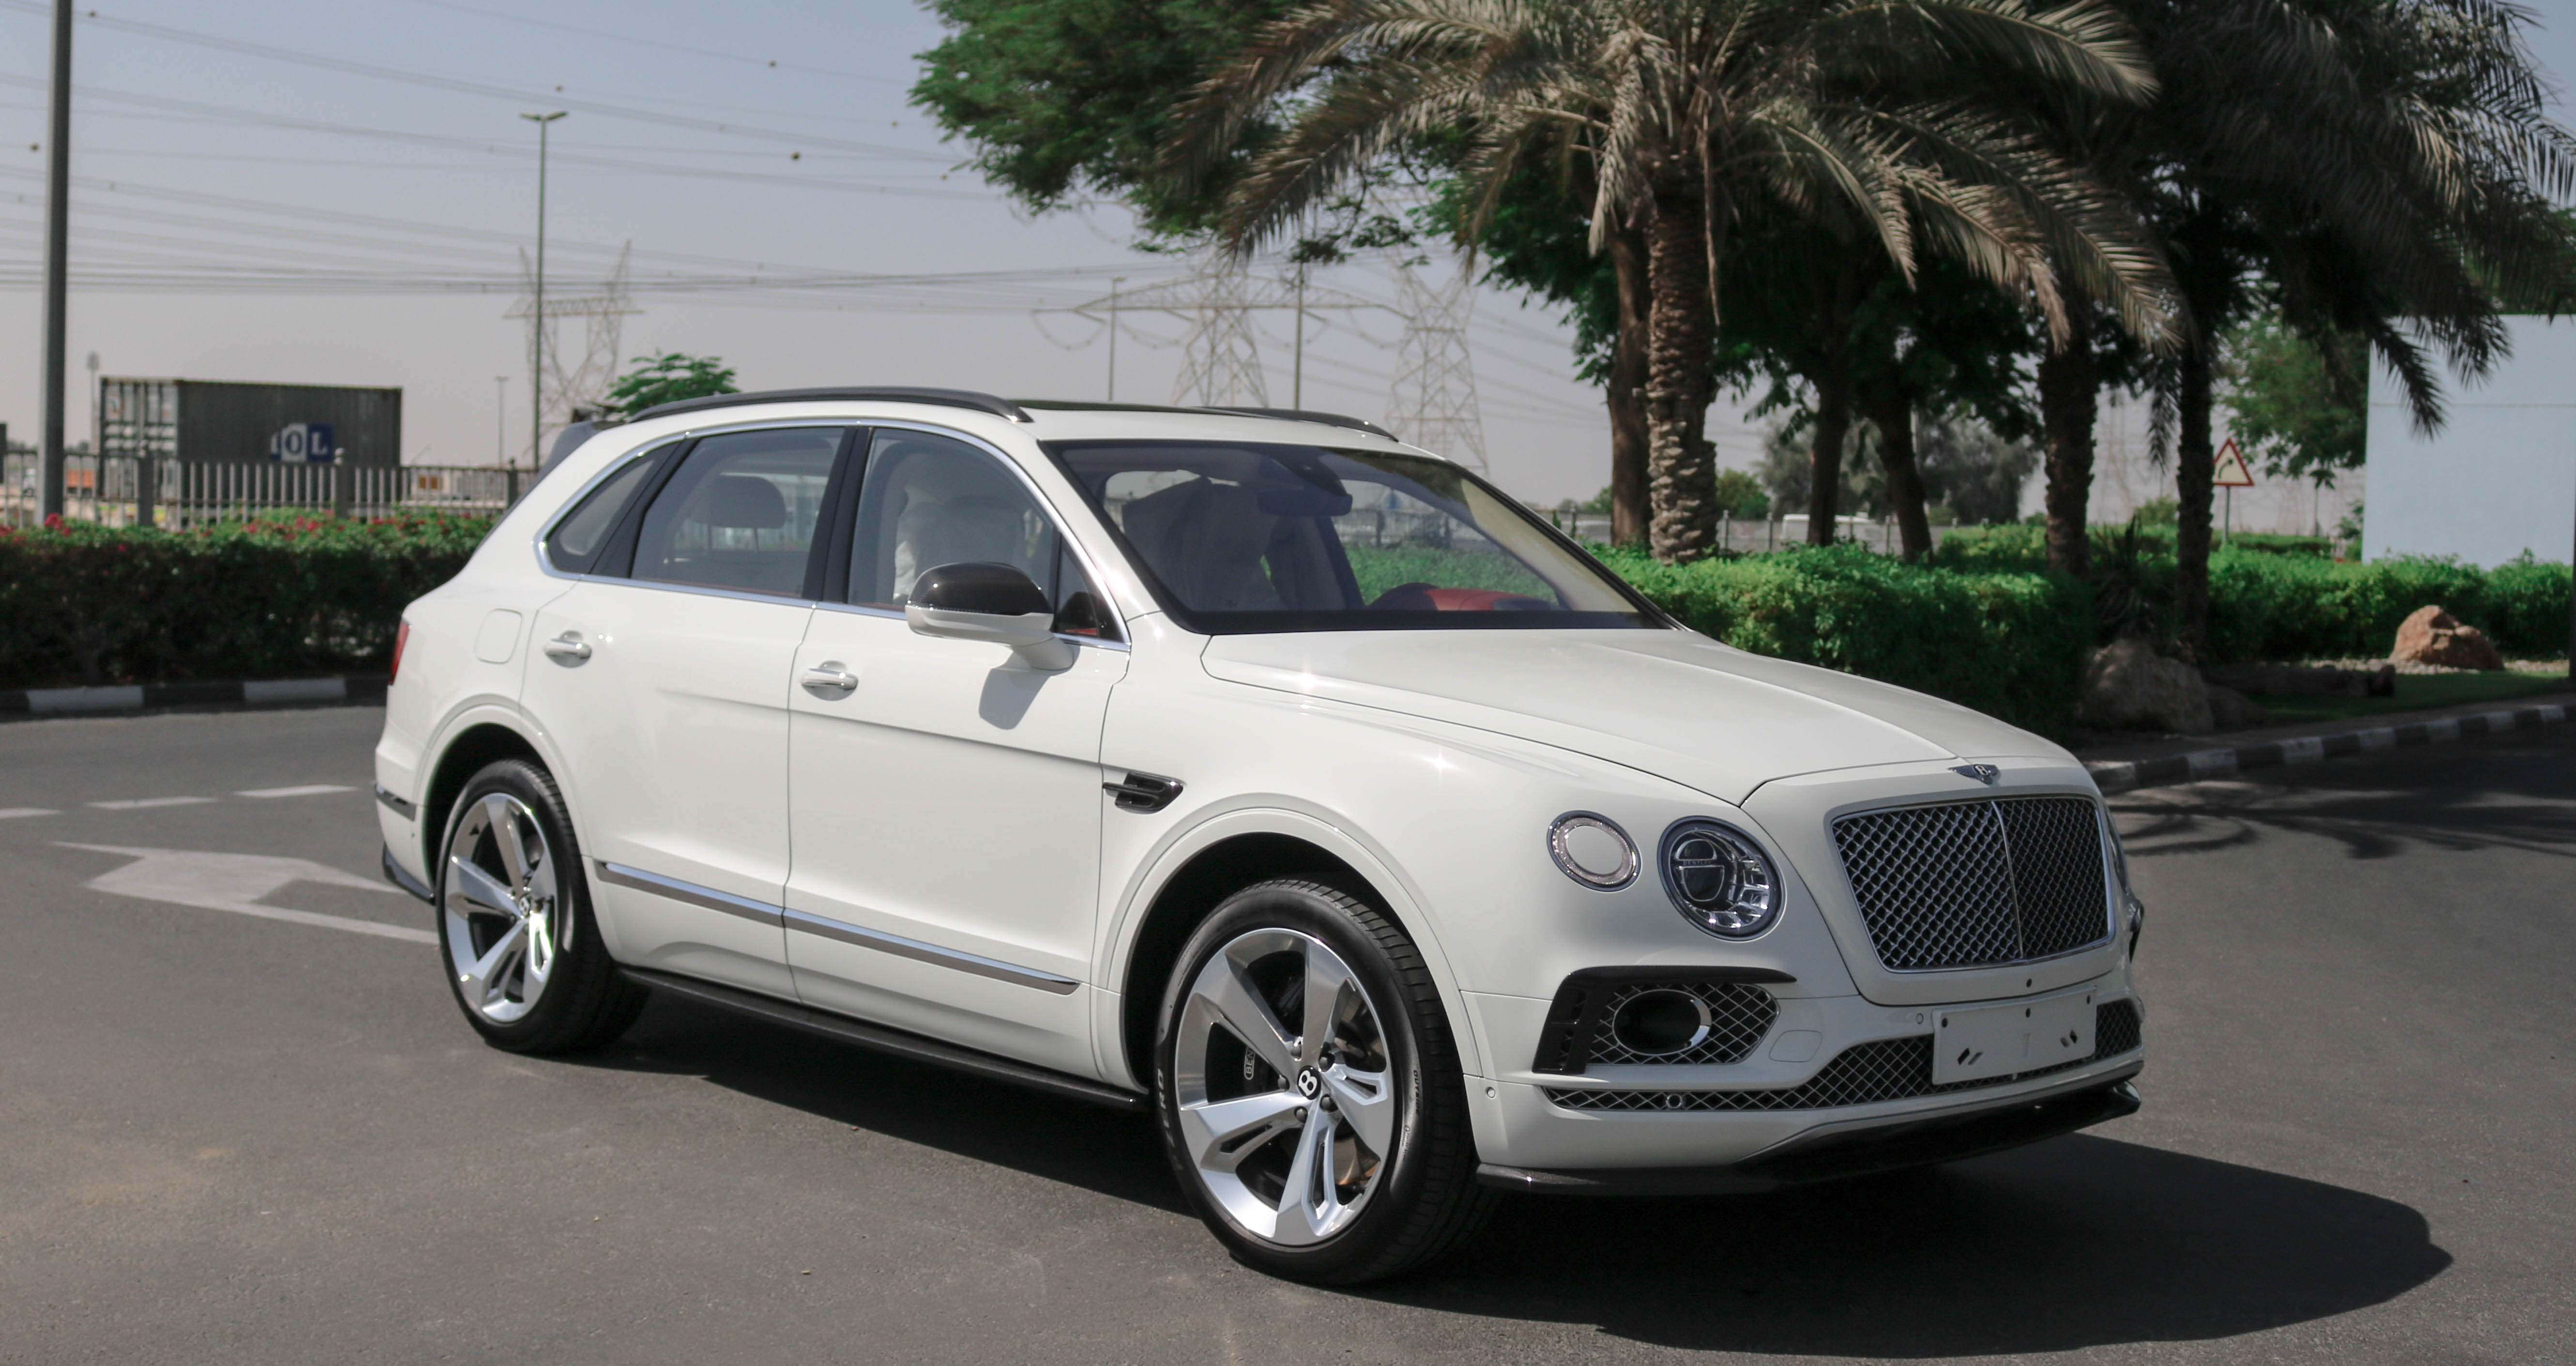 corsa bentley range motors price supercharged listing suv land rover